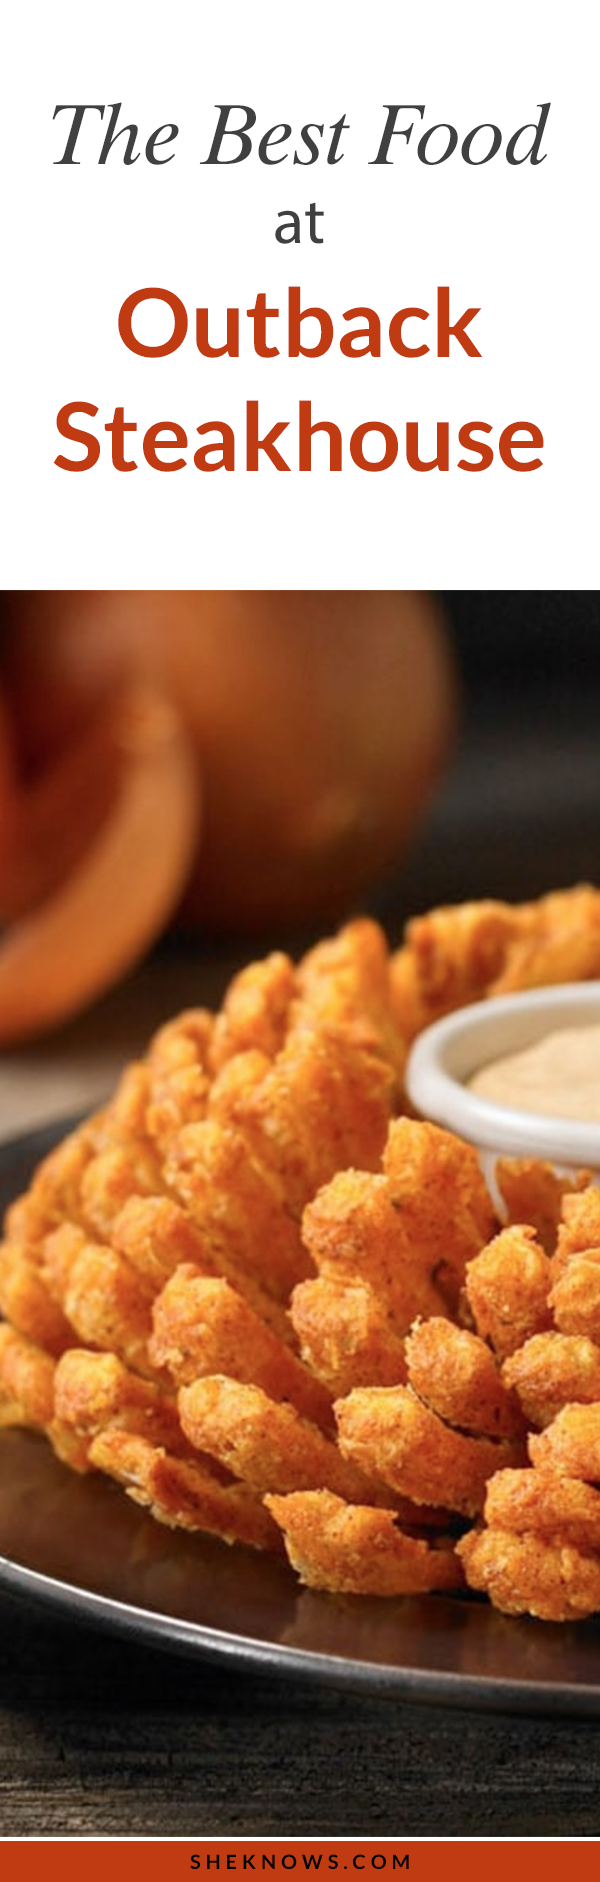 what to order at outback steakhouse